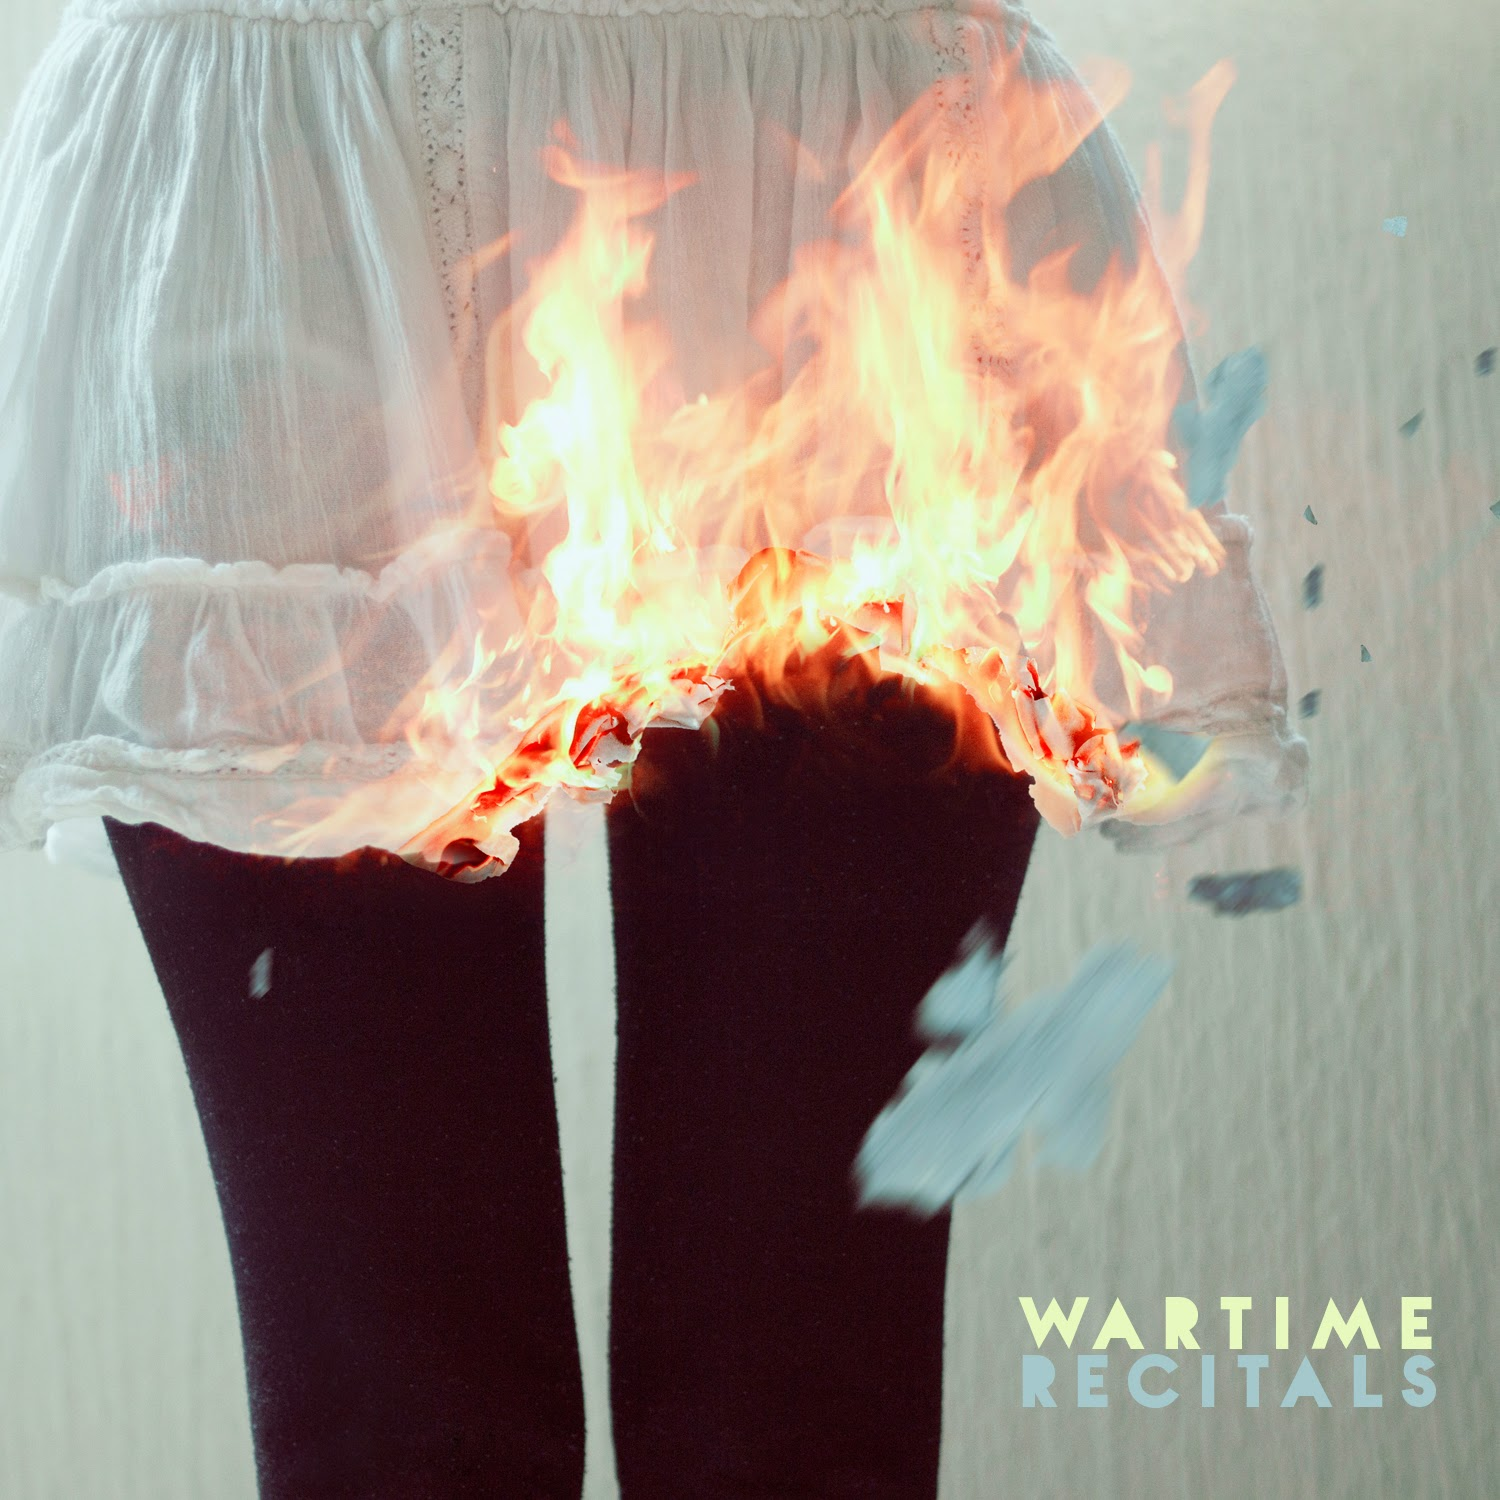 http://www.d4am.net/2014/10/wartime-recitals-self-titled.html